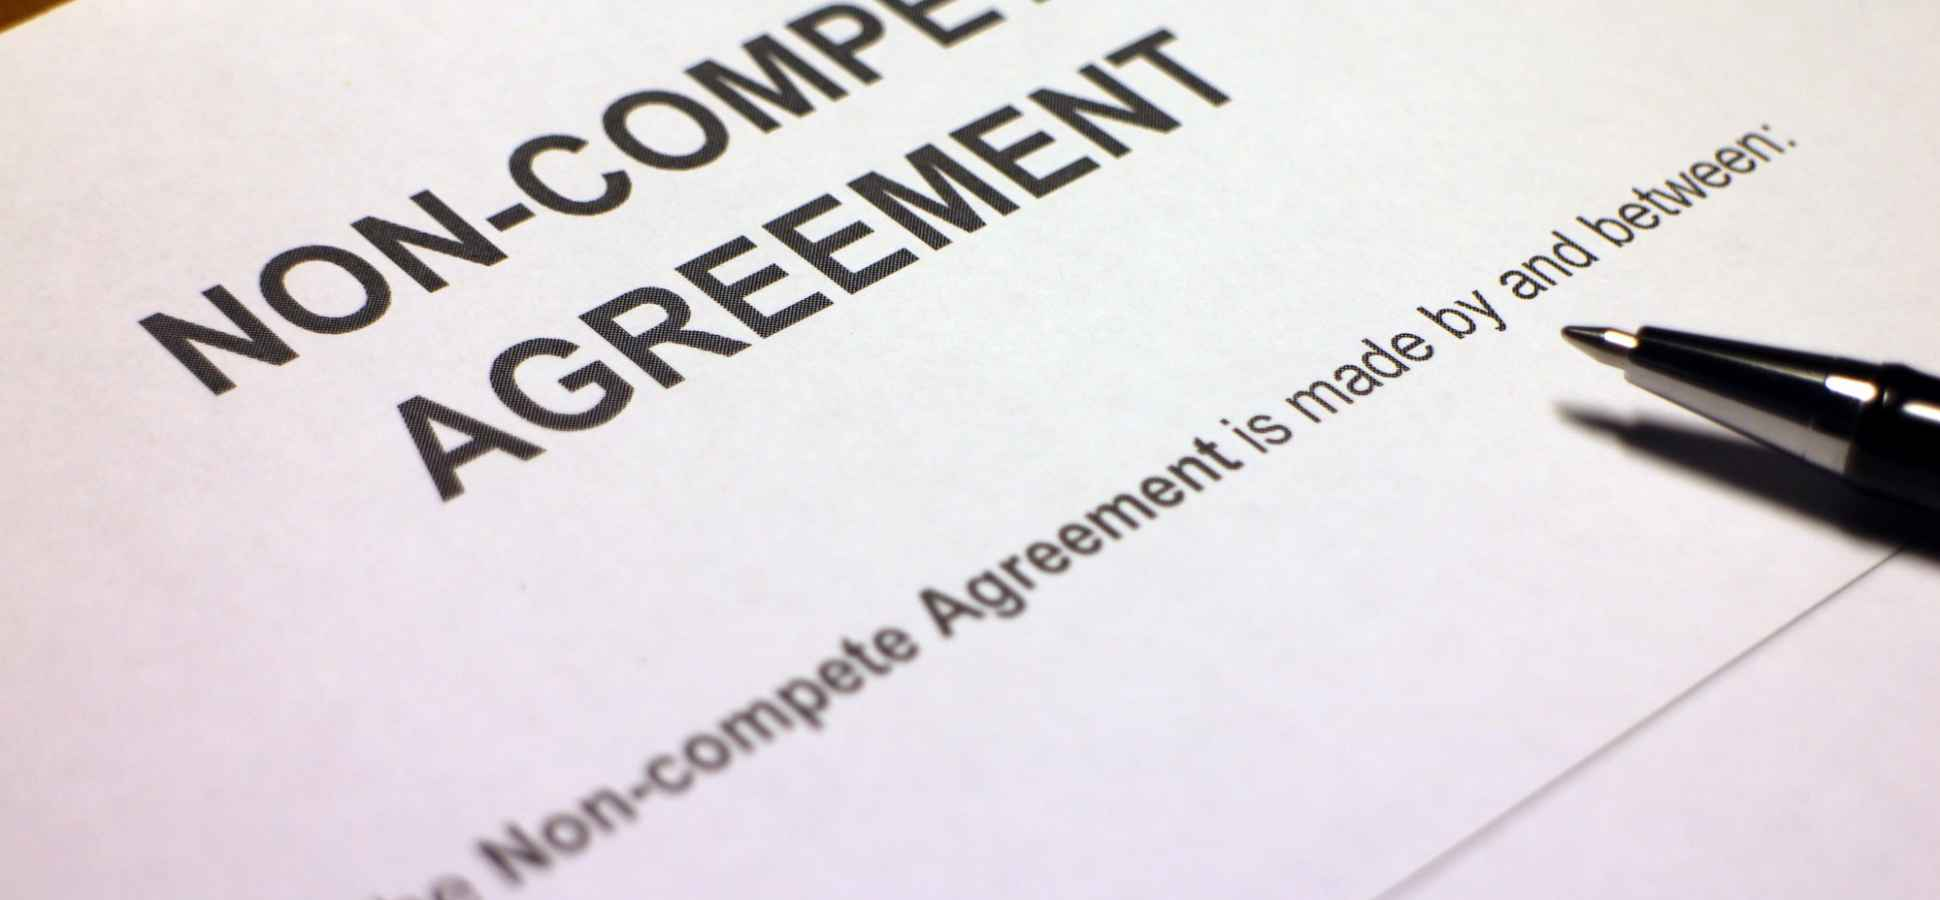 employee non compete agreements come under fire in new york com